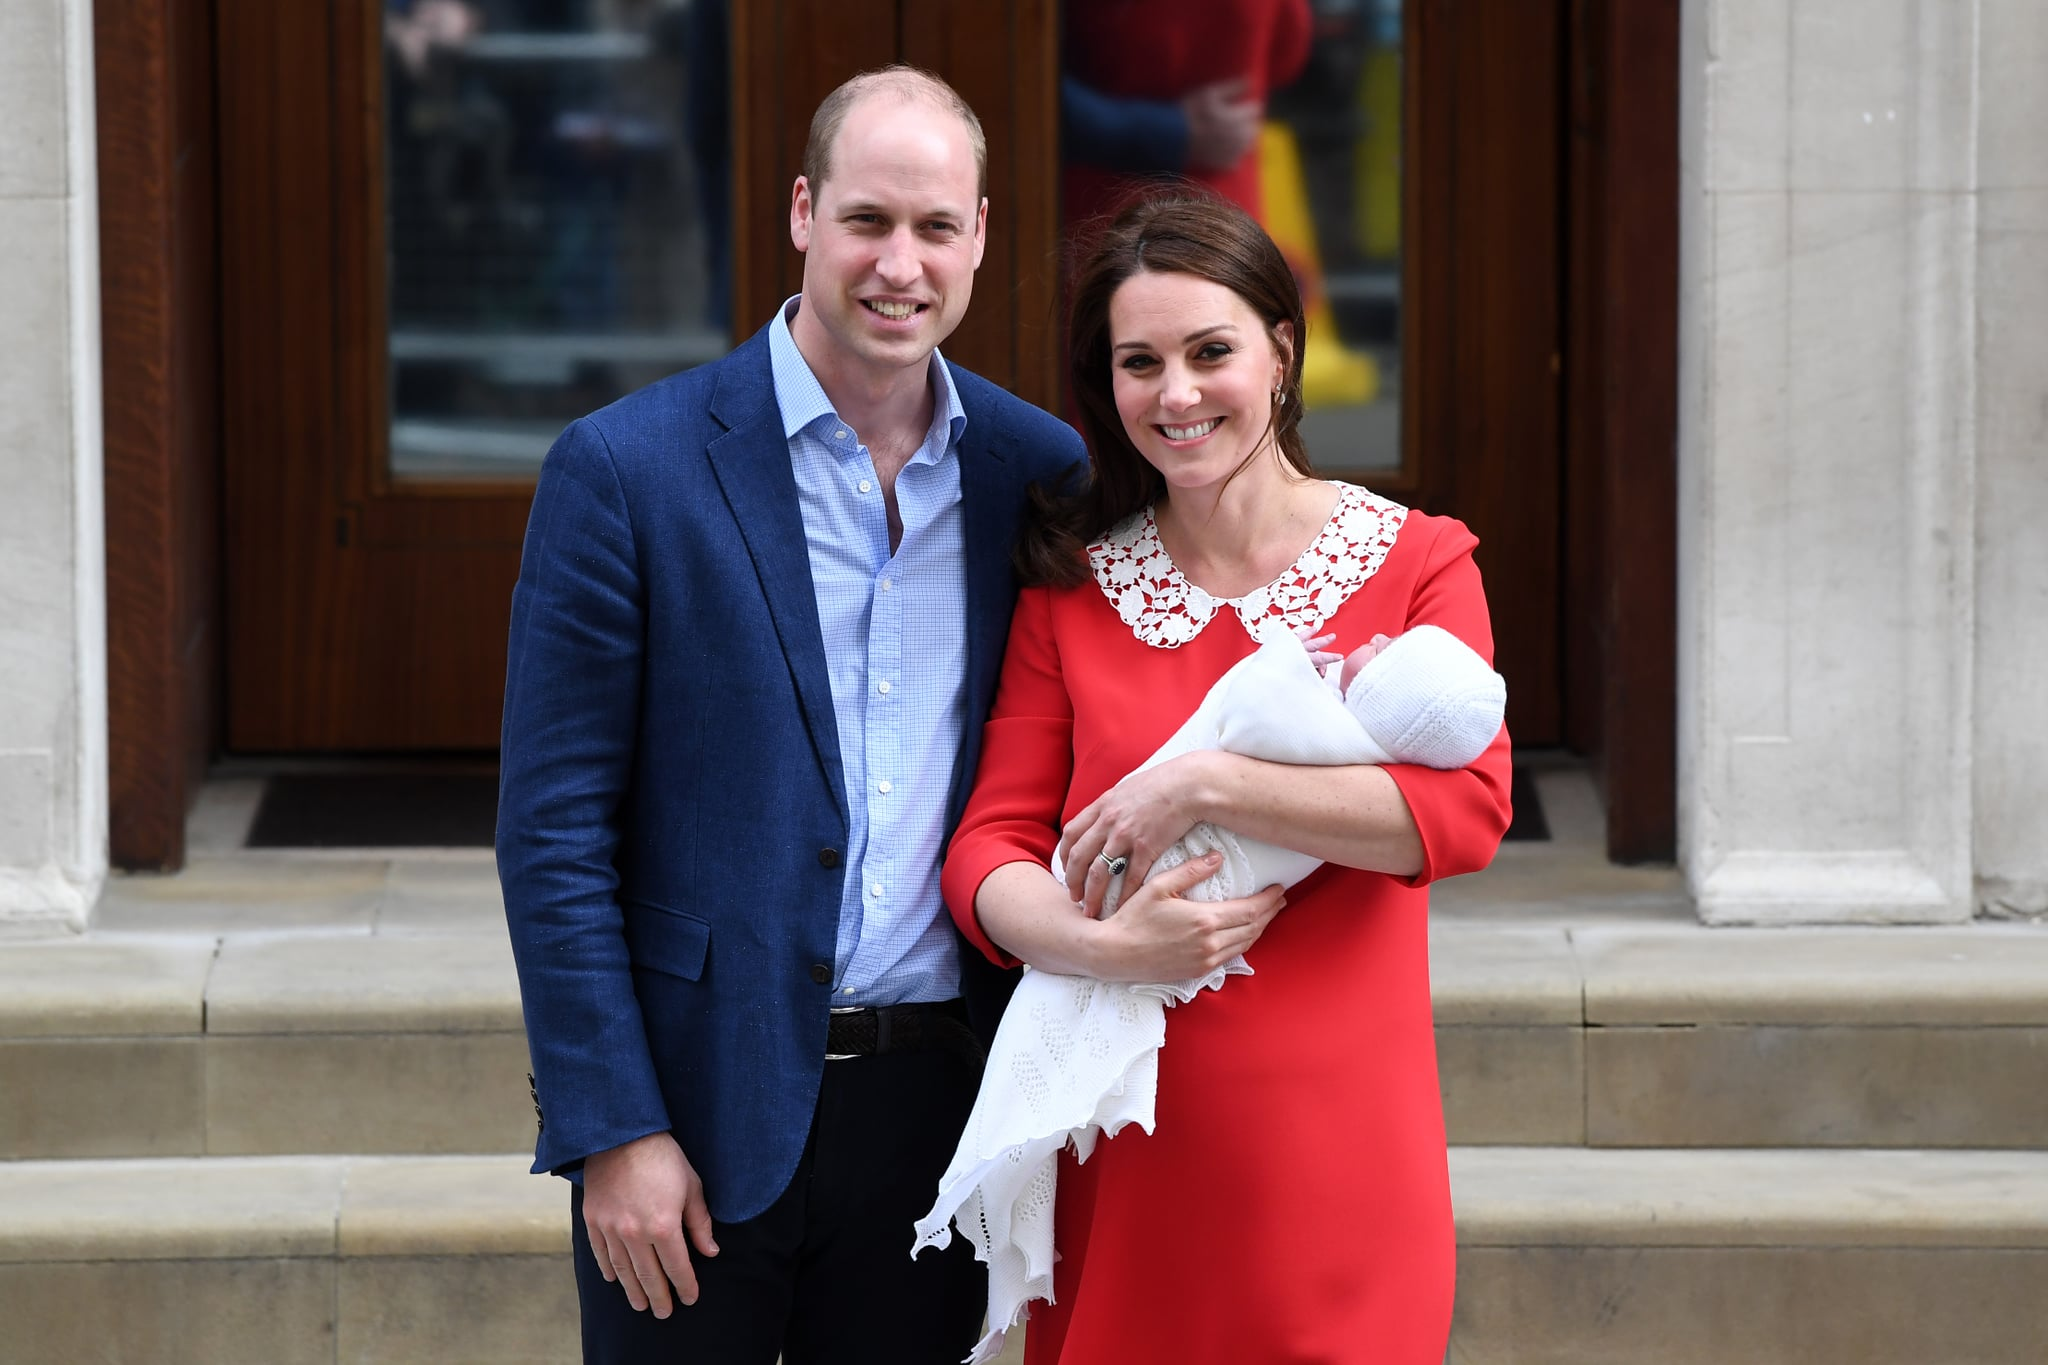 LONDON, ENGLAND - APRIL 23:  Catherine, Duchess of Cambridge and Prince William, Duke of Cambridge depart the Lindo Wing with their newborn son Prince Louis of Cambridge at St Mary's Hospital on April 23, 2018 in London, England. The Duchess safely delivered a boy at 11:01 am, weighing 8lbs 7oz, who will be fifth in line to the throne.  (Photo by Samir Hussein/WireImage)